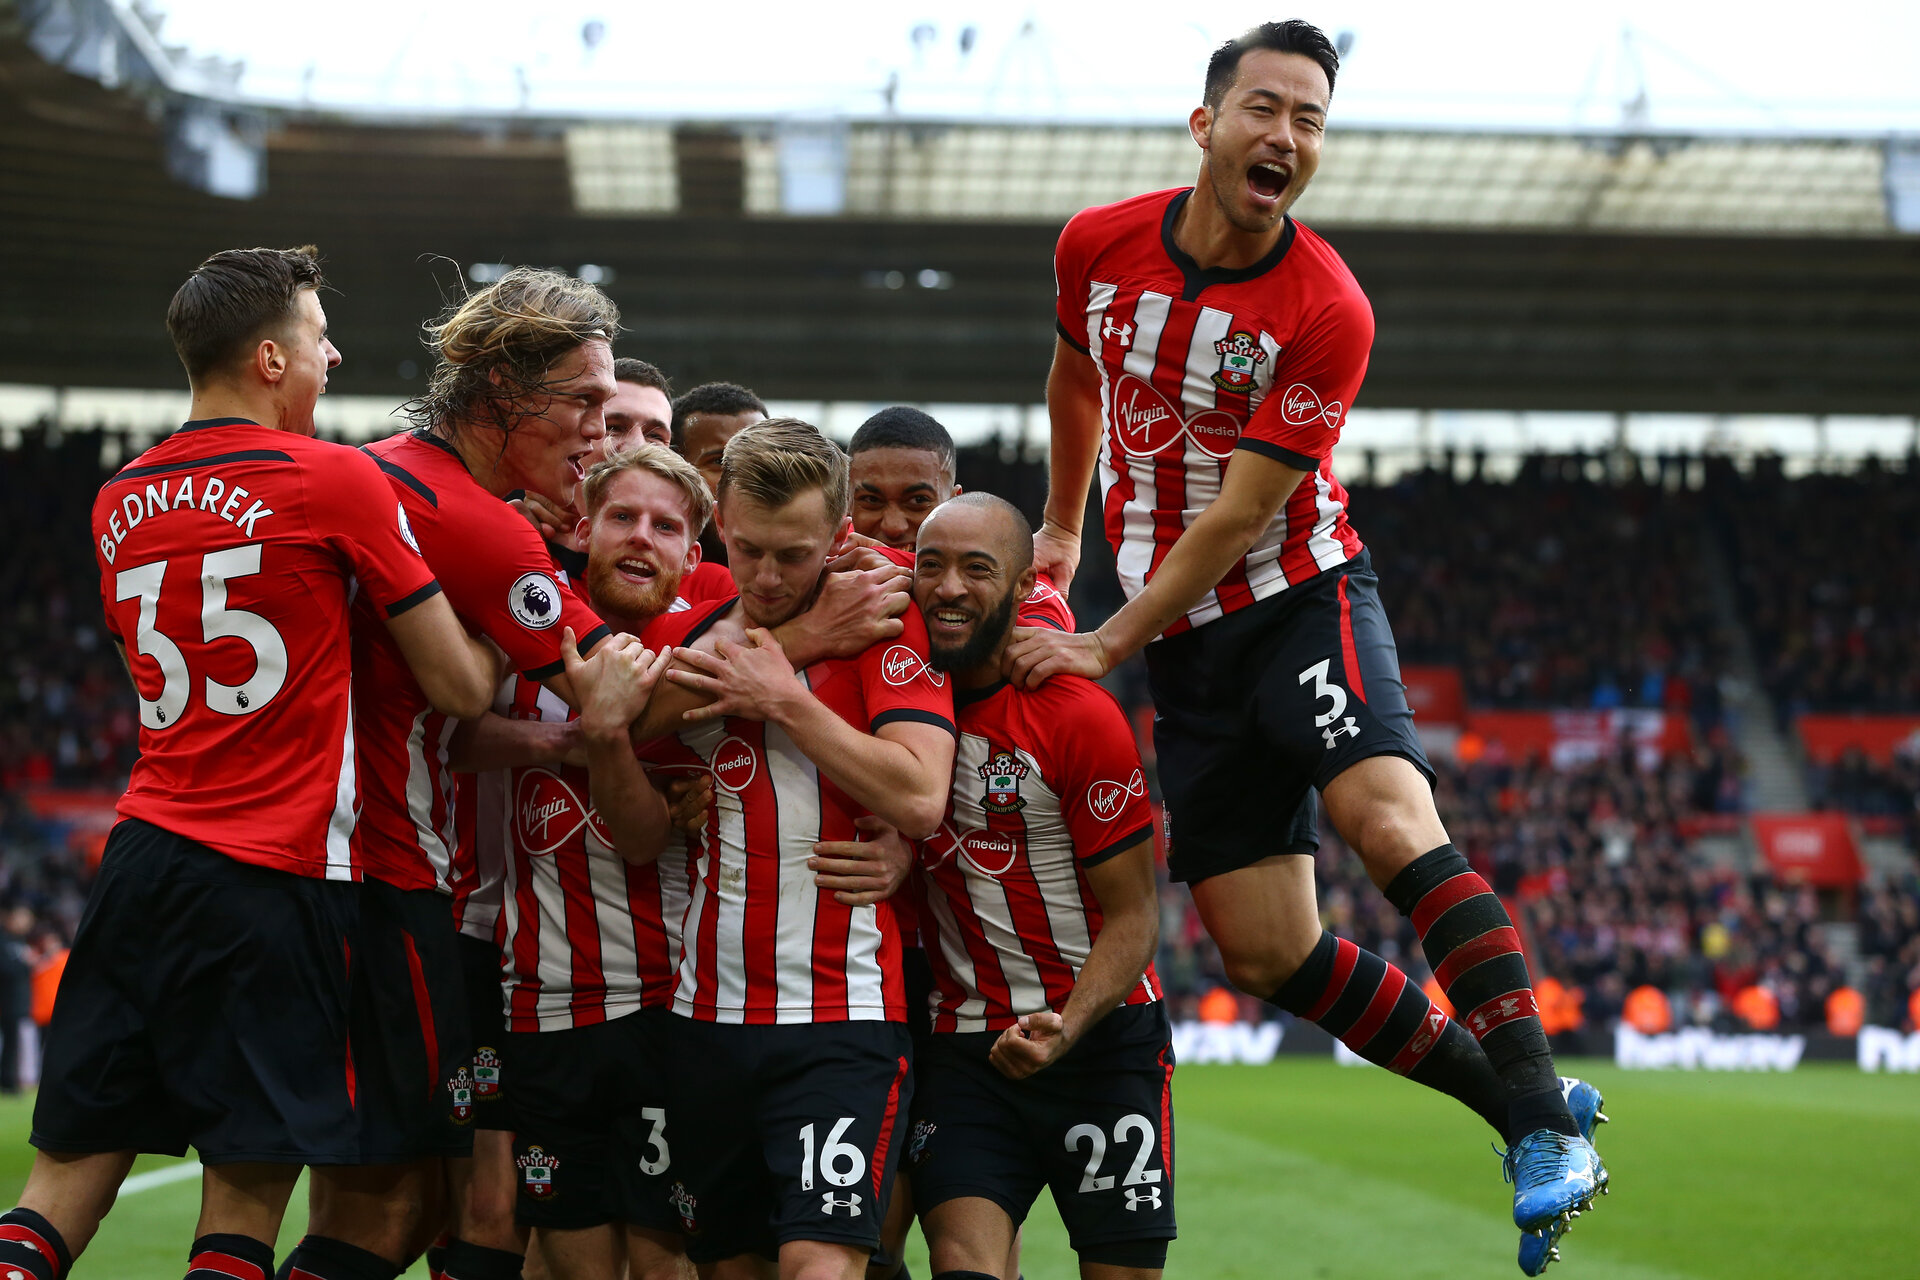 SOUTHAMPTON, ENGLAND - MARCH 09:  James Ward-Prowse scores and celebrates with Ryan Bertrand, Yan Valery, Josh Sims, Jan Bednarek during the Premier League match between Southampton FC and Tottenham Hotspur at St Mary's Stadium on March 09, 2019 in Southampton, United Kingdom. (Photo by James Bridle - Southampton FC/Southampton FC via Getty Images)